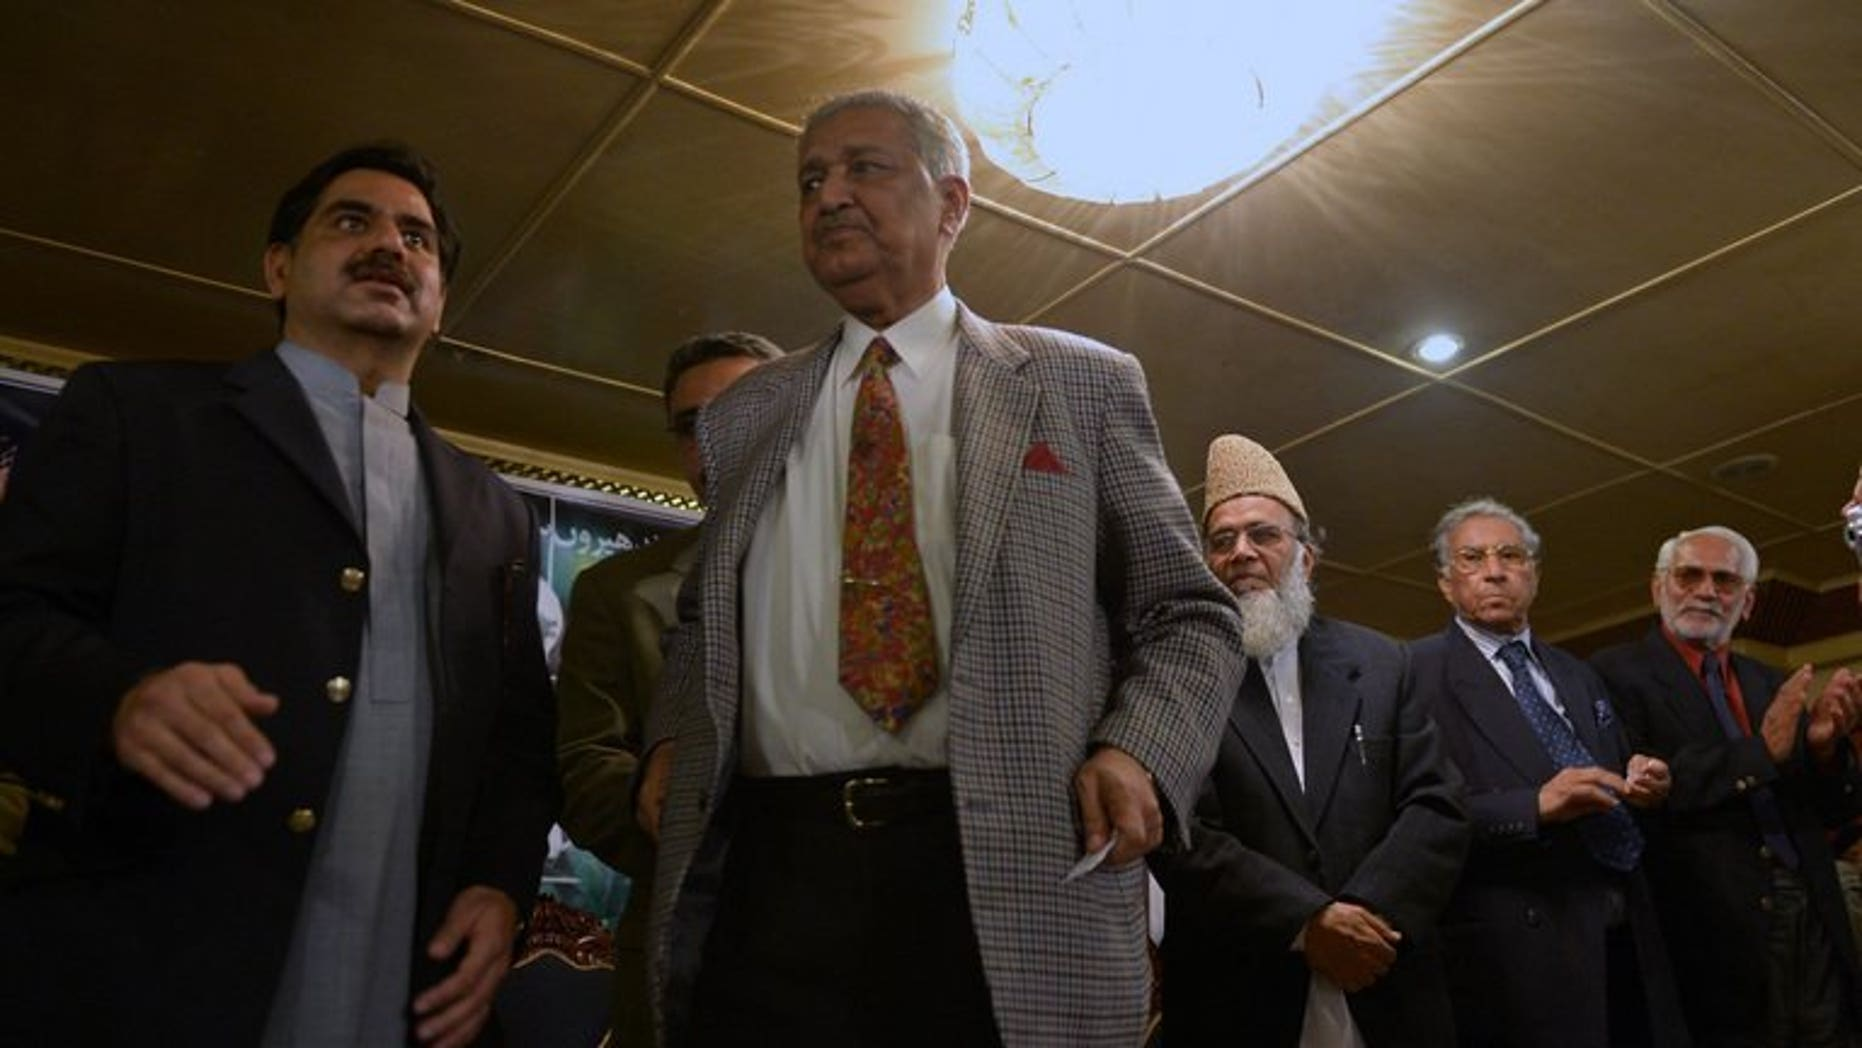 Former Pakistani nuclear scientist and chairman of Tehreek-e-Tahafuz Pakistan party, Abdul Qadeer Khan (2L), stands to give a speech during a public meeting in Islamabad on February 26, 2013.